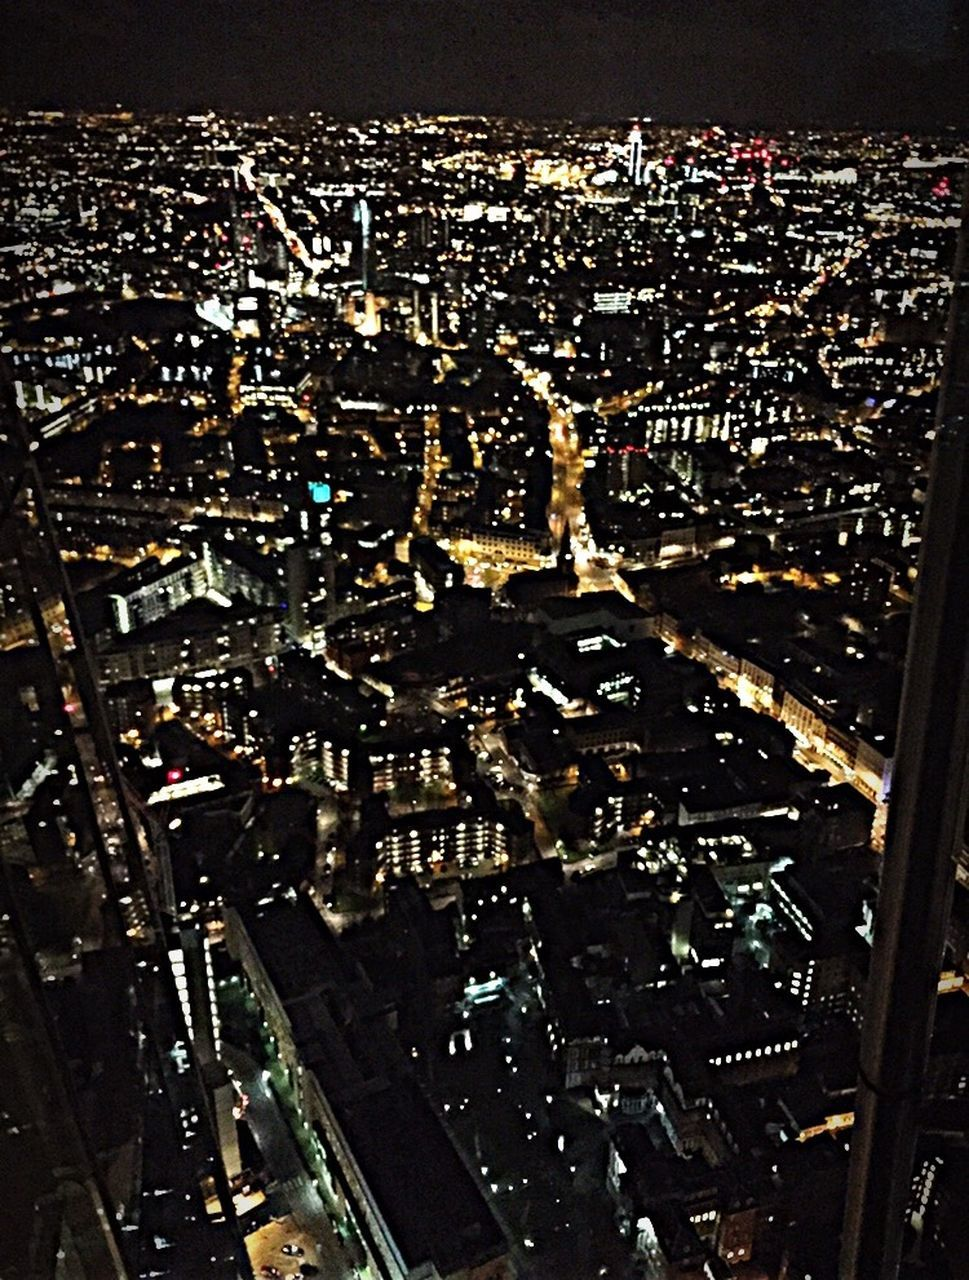 cityscape, city, building exterior, architecture, aerial view, no people, illuminated, night, outdoors